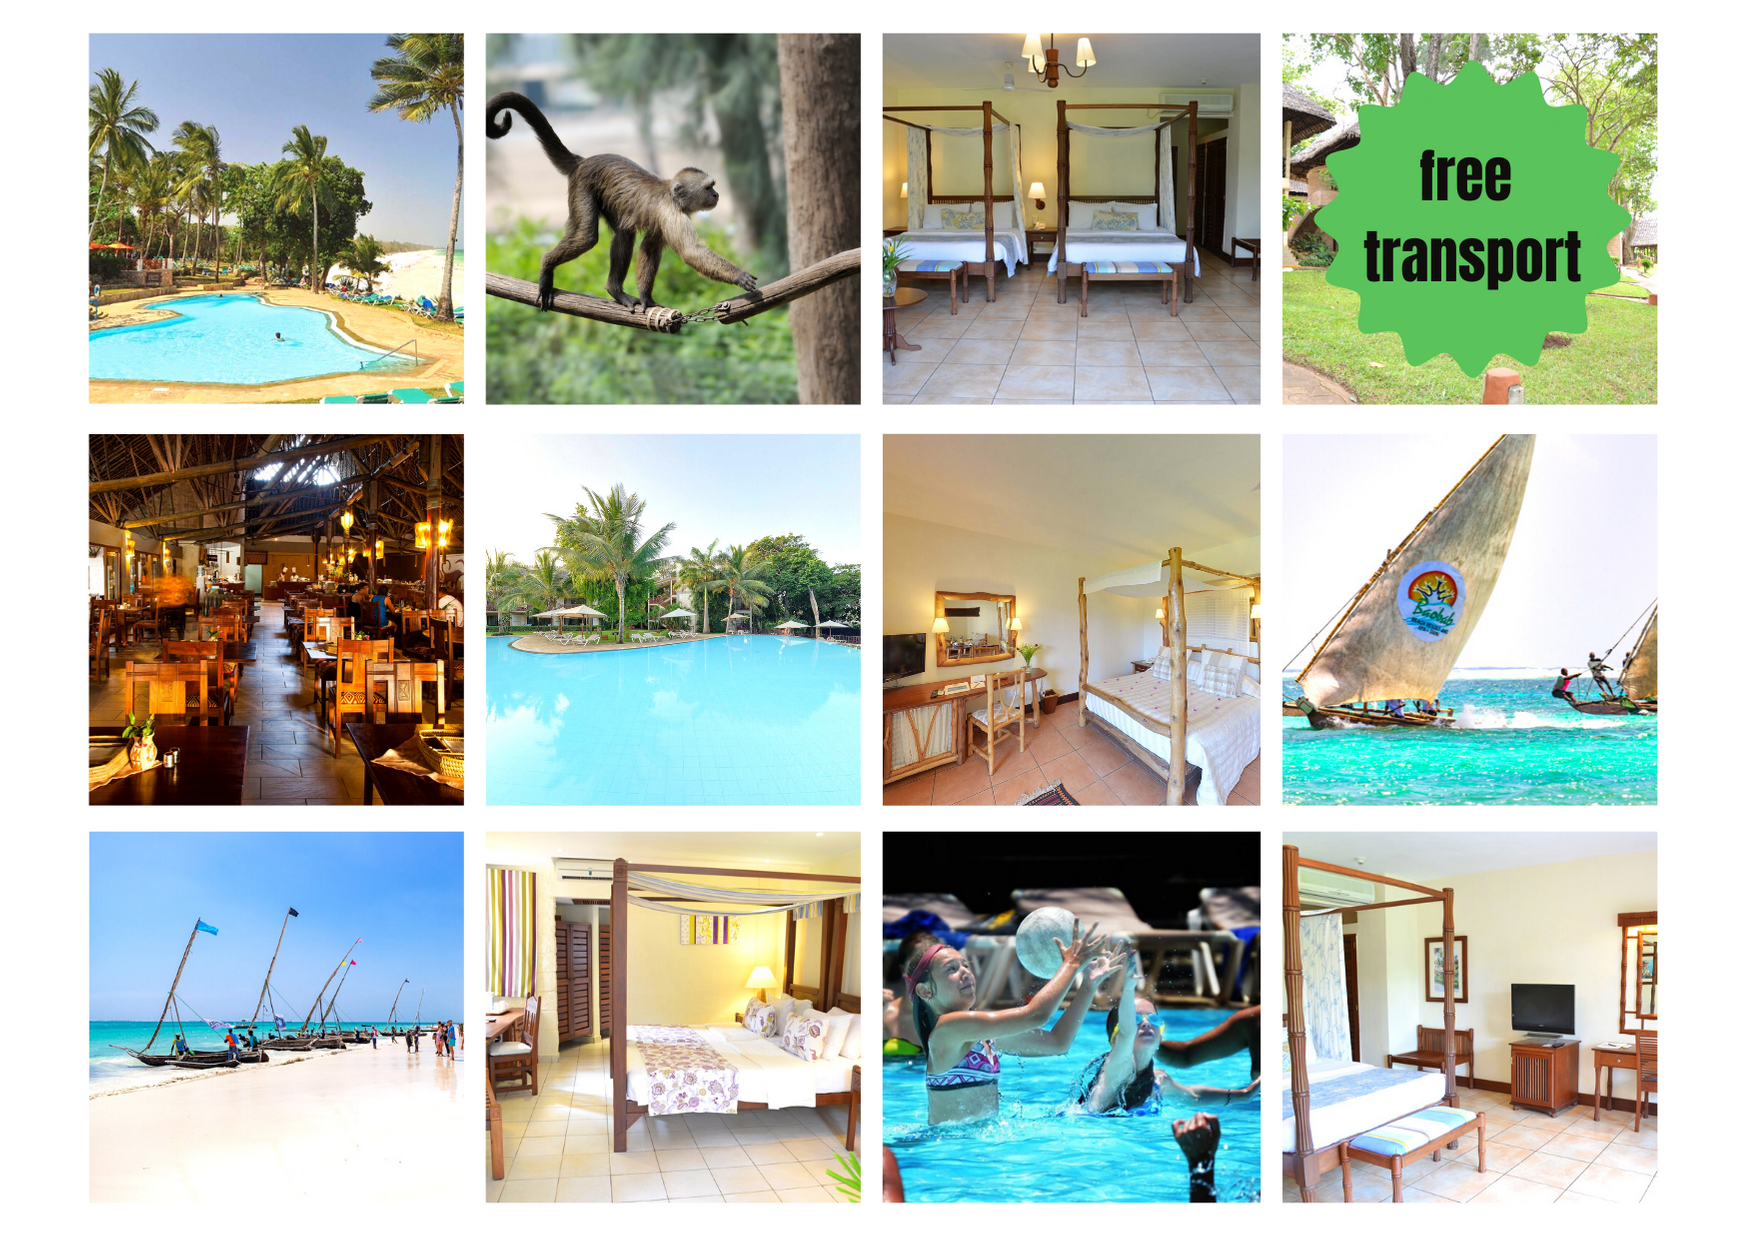 KITEMOTION-DIANI-BEACH-KITESURFING-ACCOMMODATION-TRAVEL-KENYA-DIANI (6)